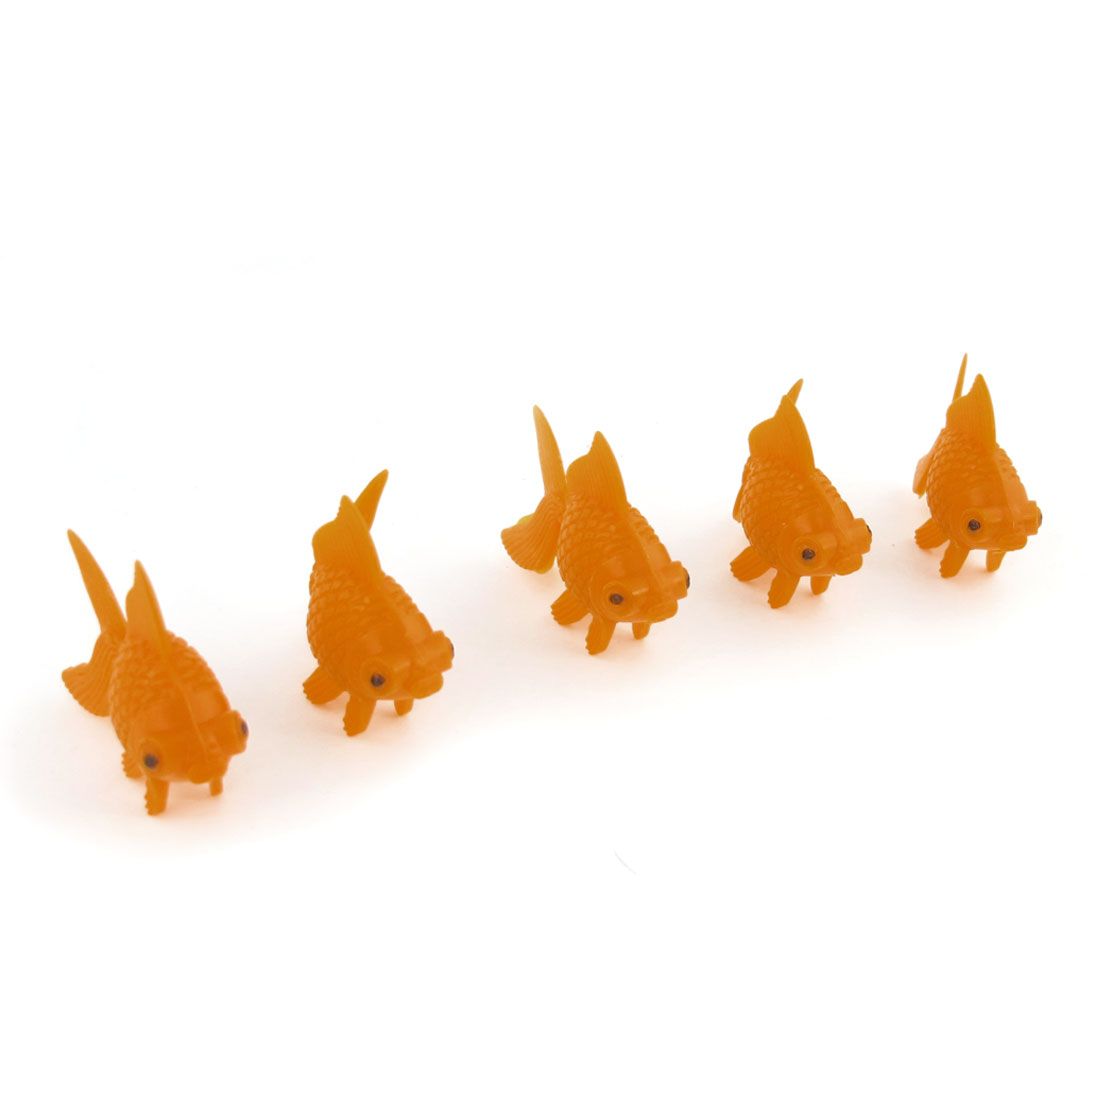 5 Pcs Aquarium Tank Orange Simulation Swaying Tails Tropical Fish Ornament